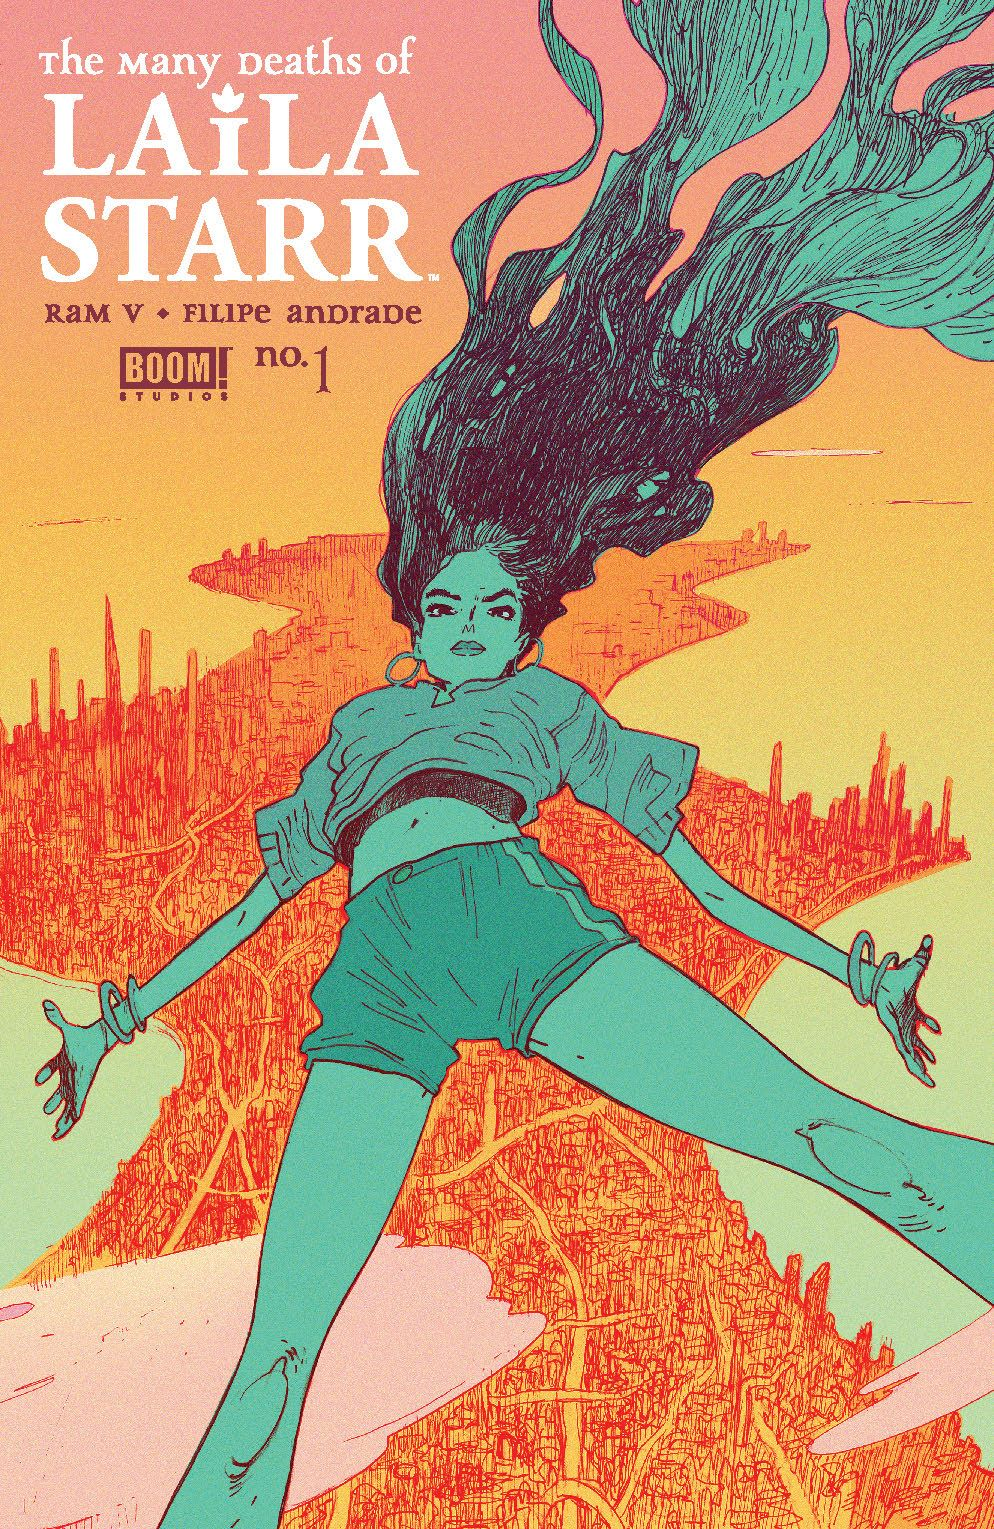 ManyDeathsLailaStarr_001_Cover_A_Main ComicList Previews: THE MANY DEATHS OF LAILA STARR #1